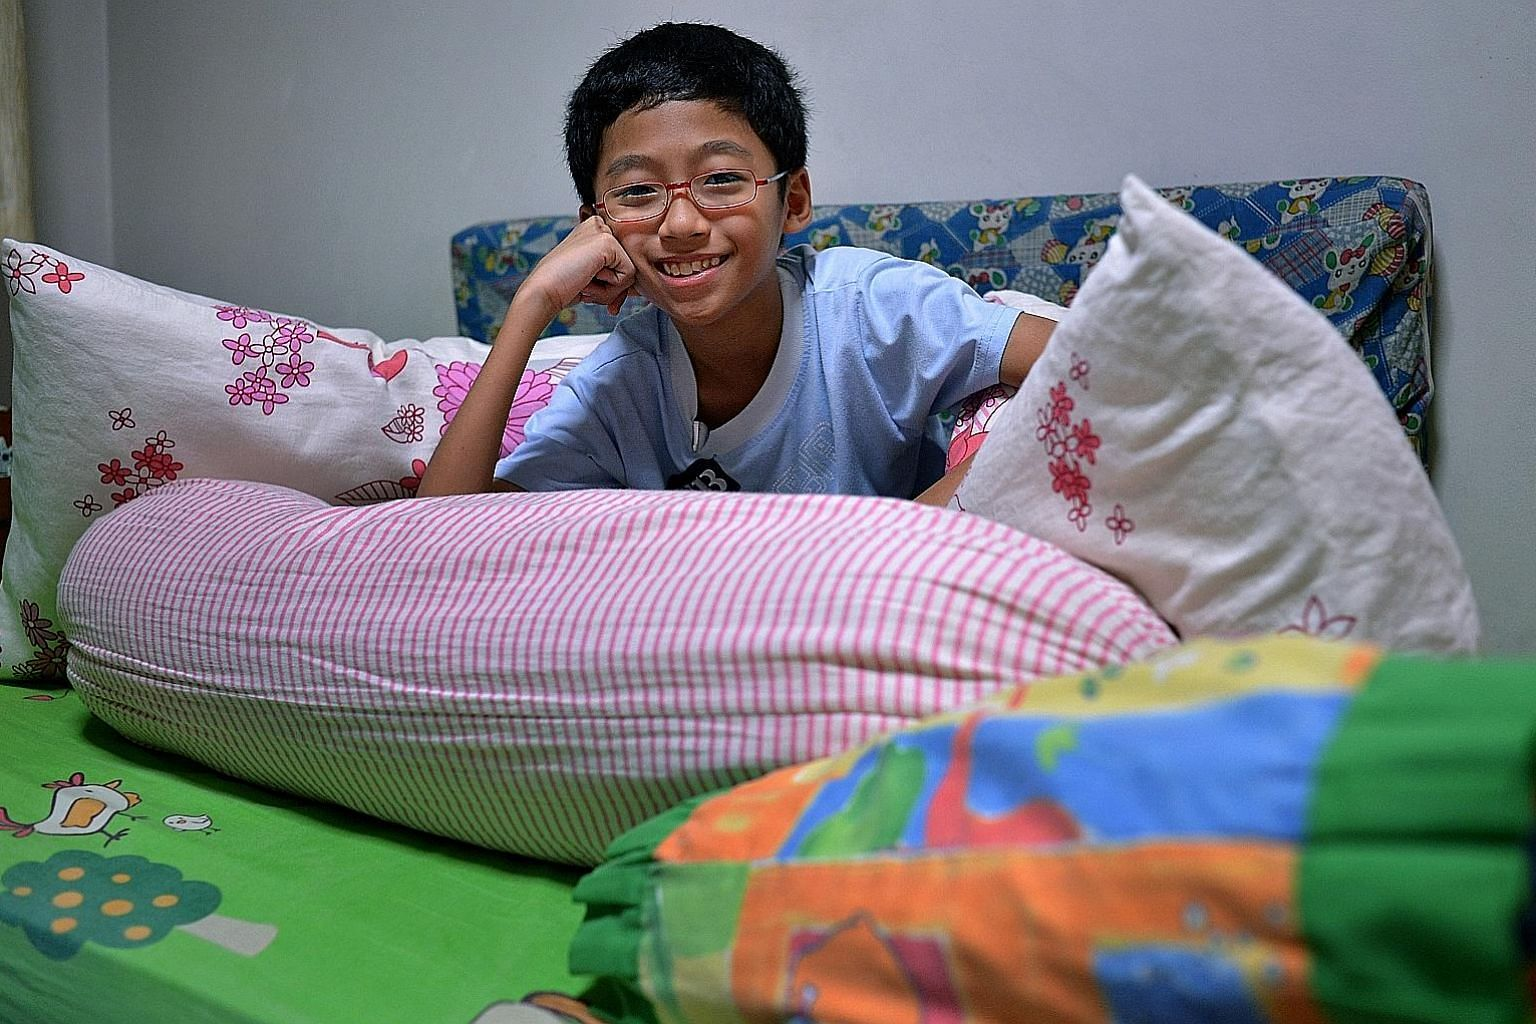 Kai Jun, 12, suffers from severe haemophilia, and his parents pad his room with extra mattresses and pillows to cushion him from any falls or bumps that could cause him to bleed.